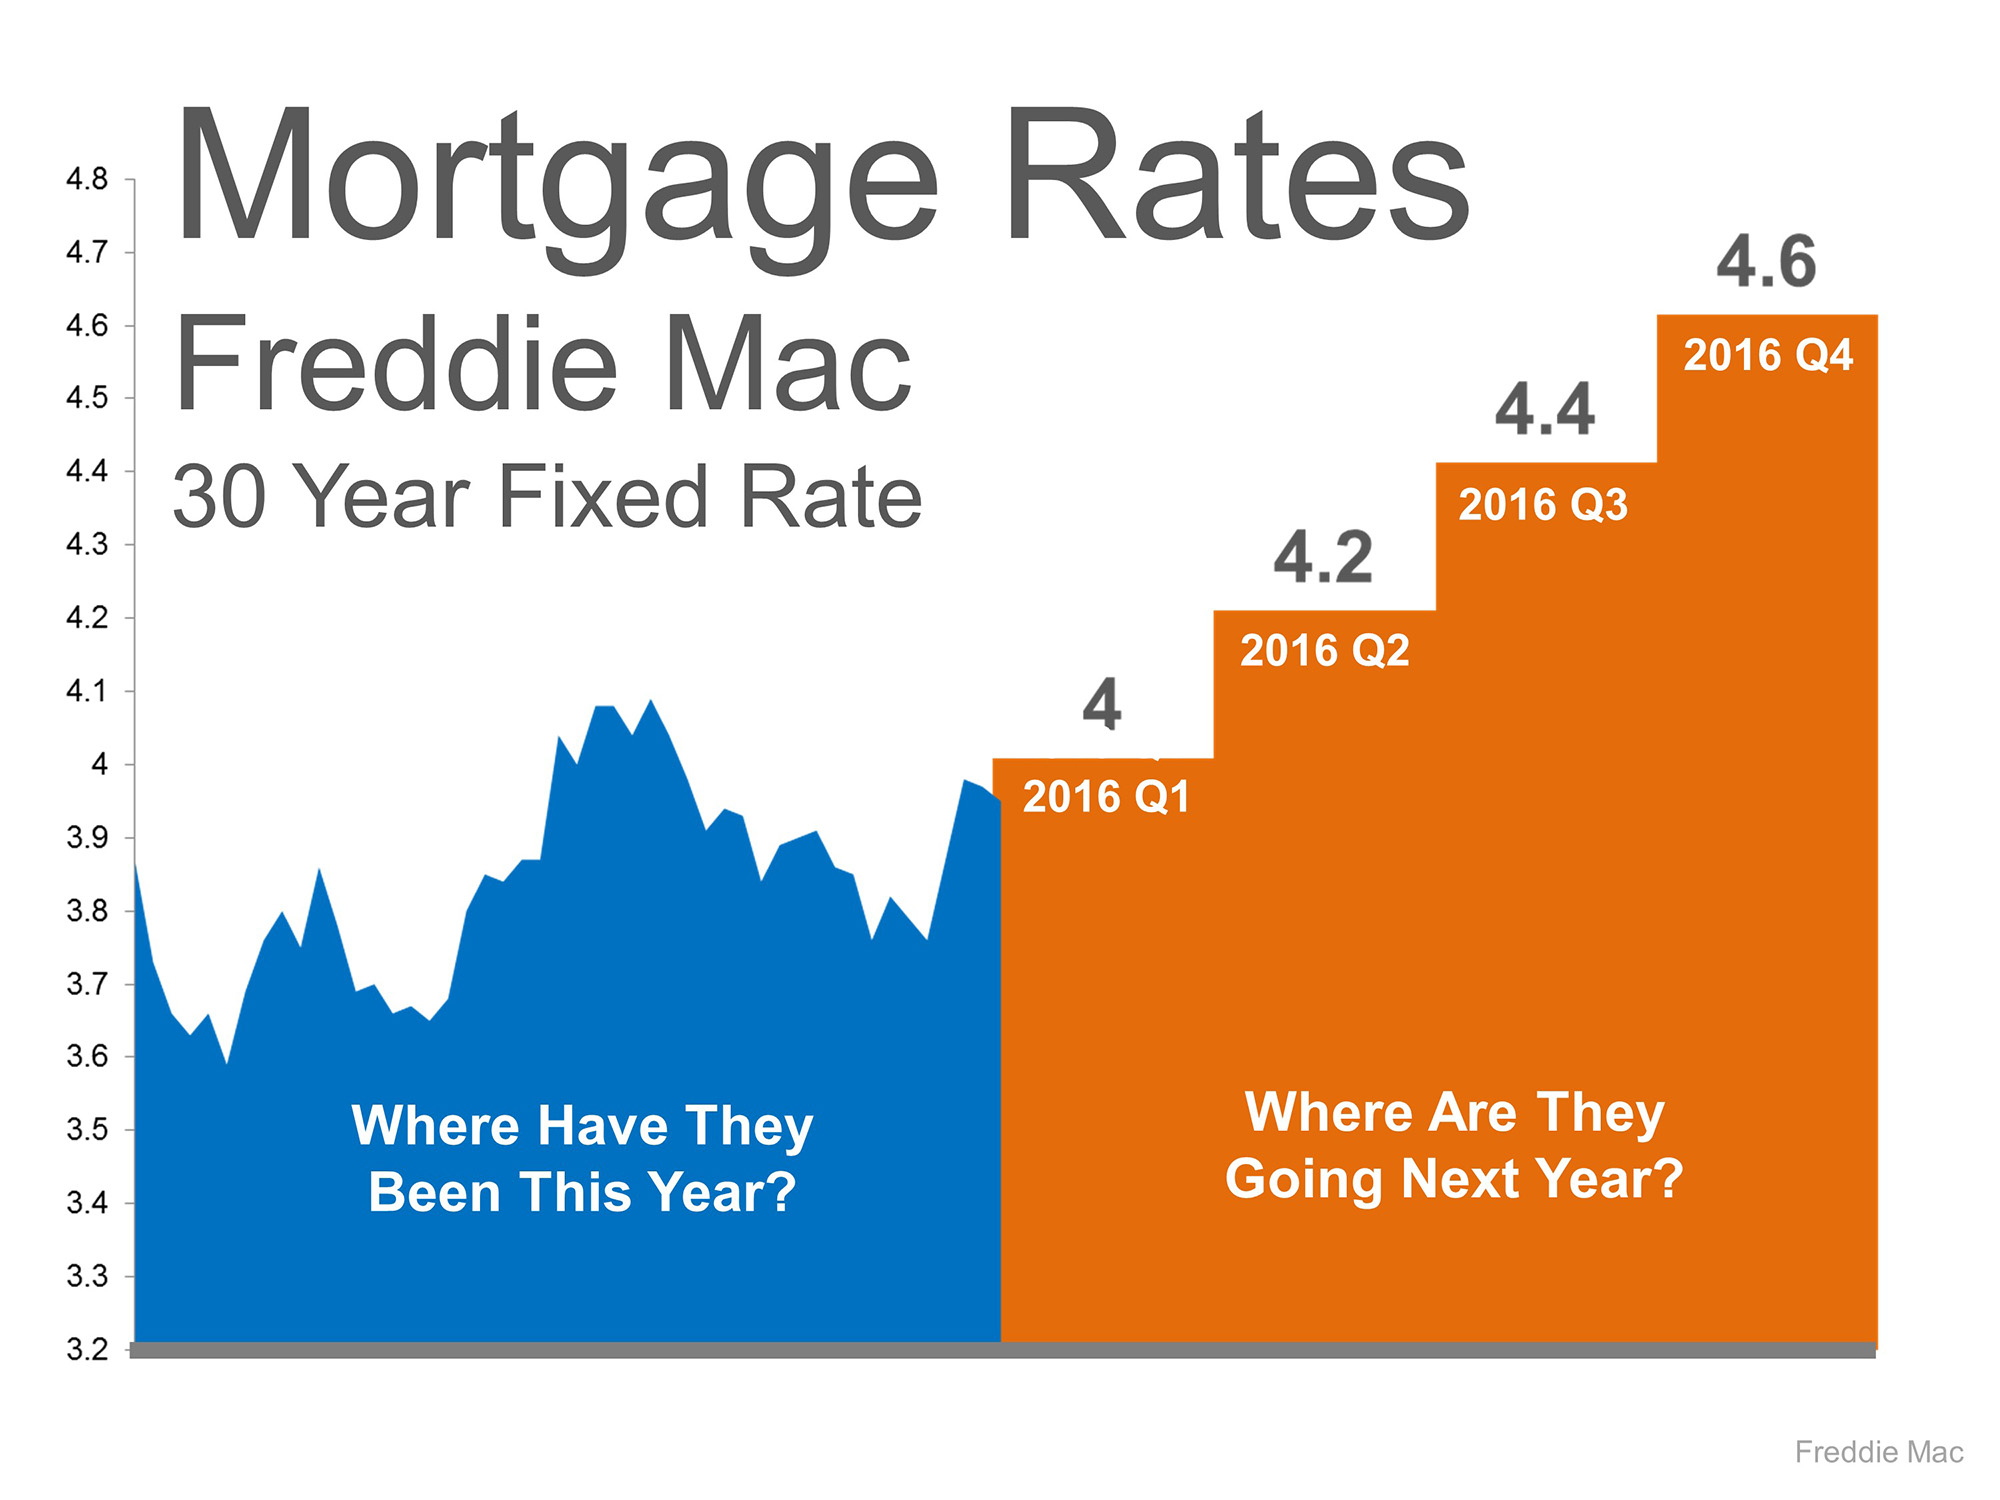 KCM Dec 15 - Rates projected 2016